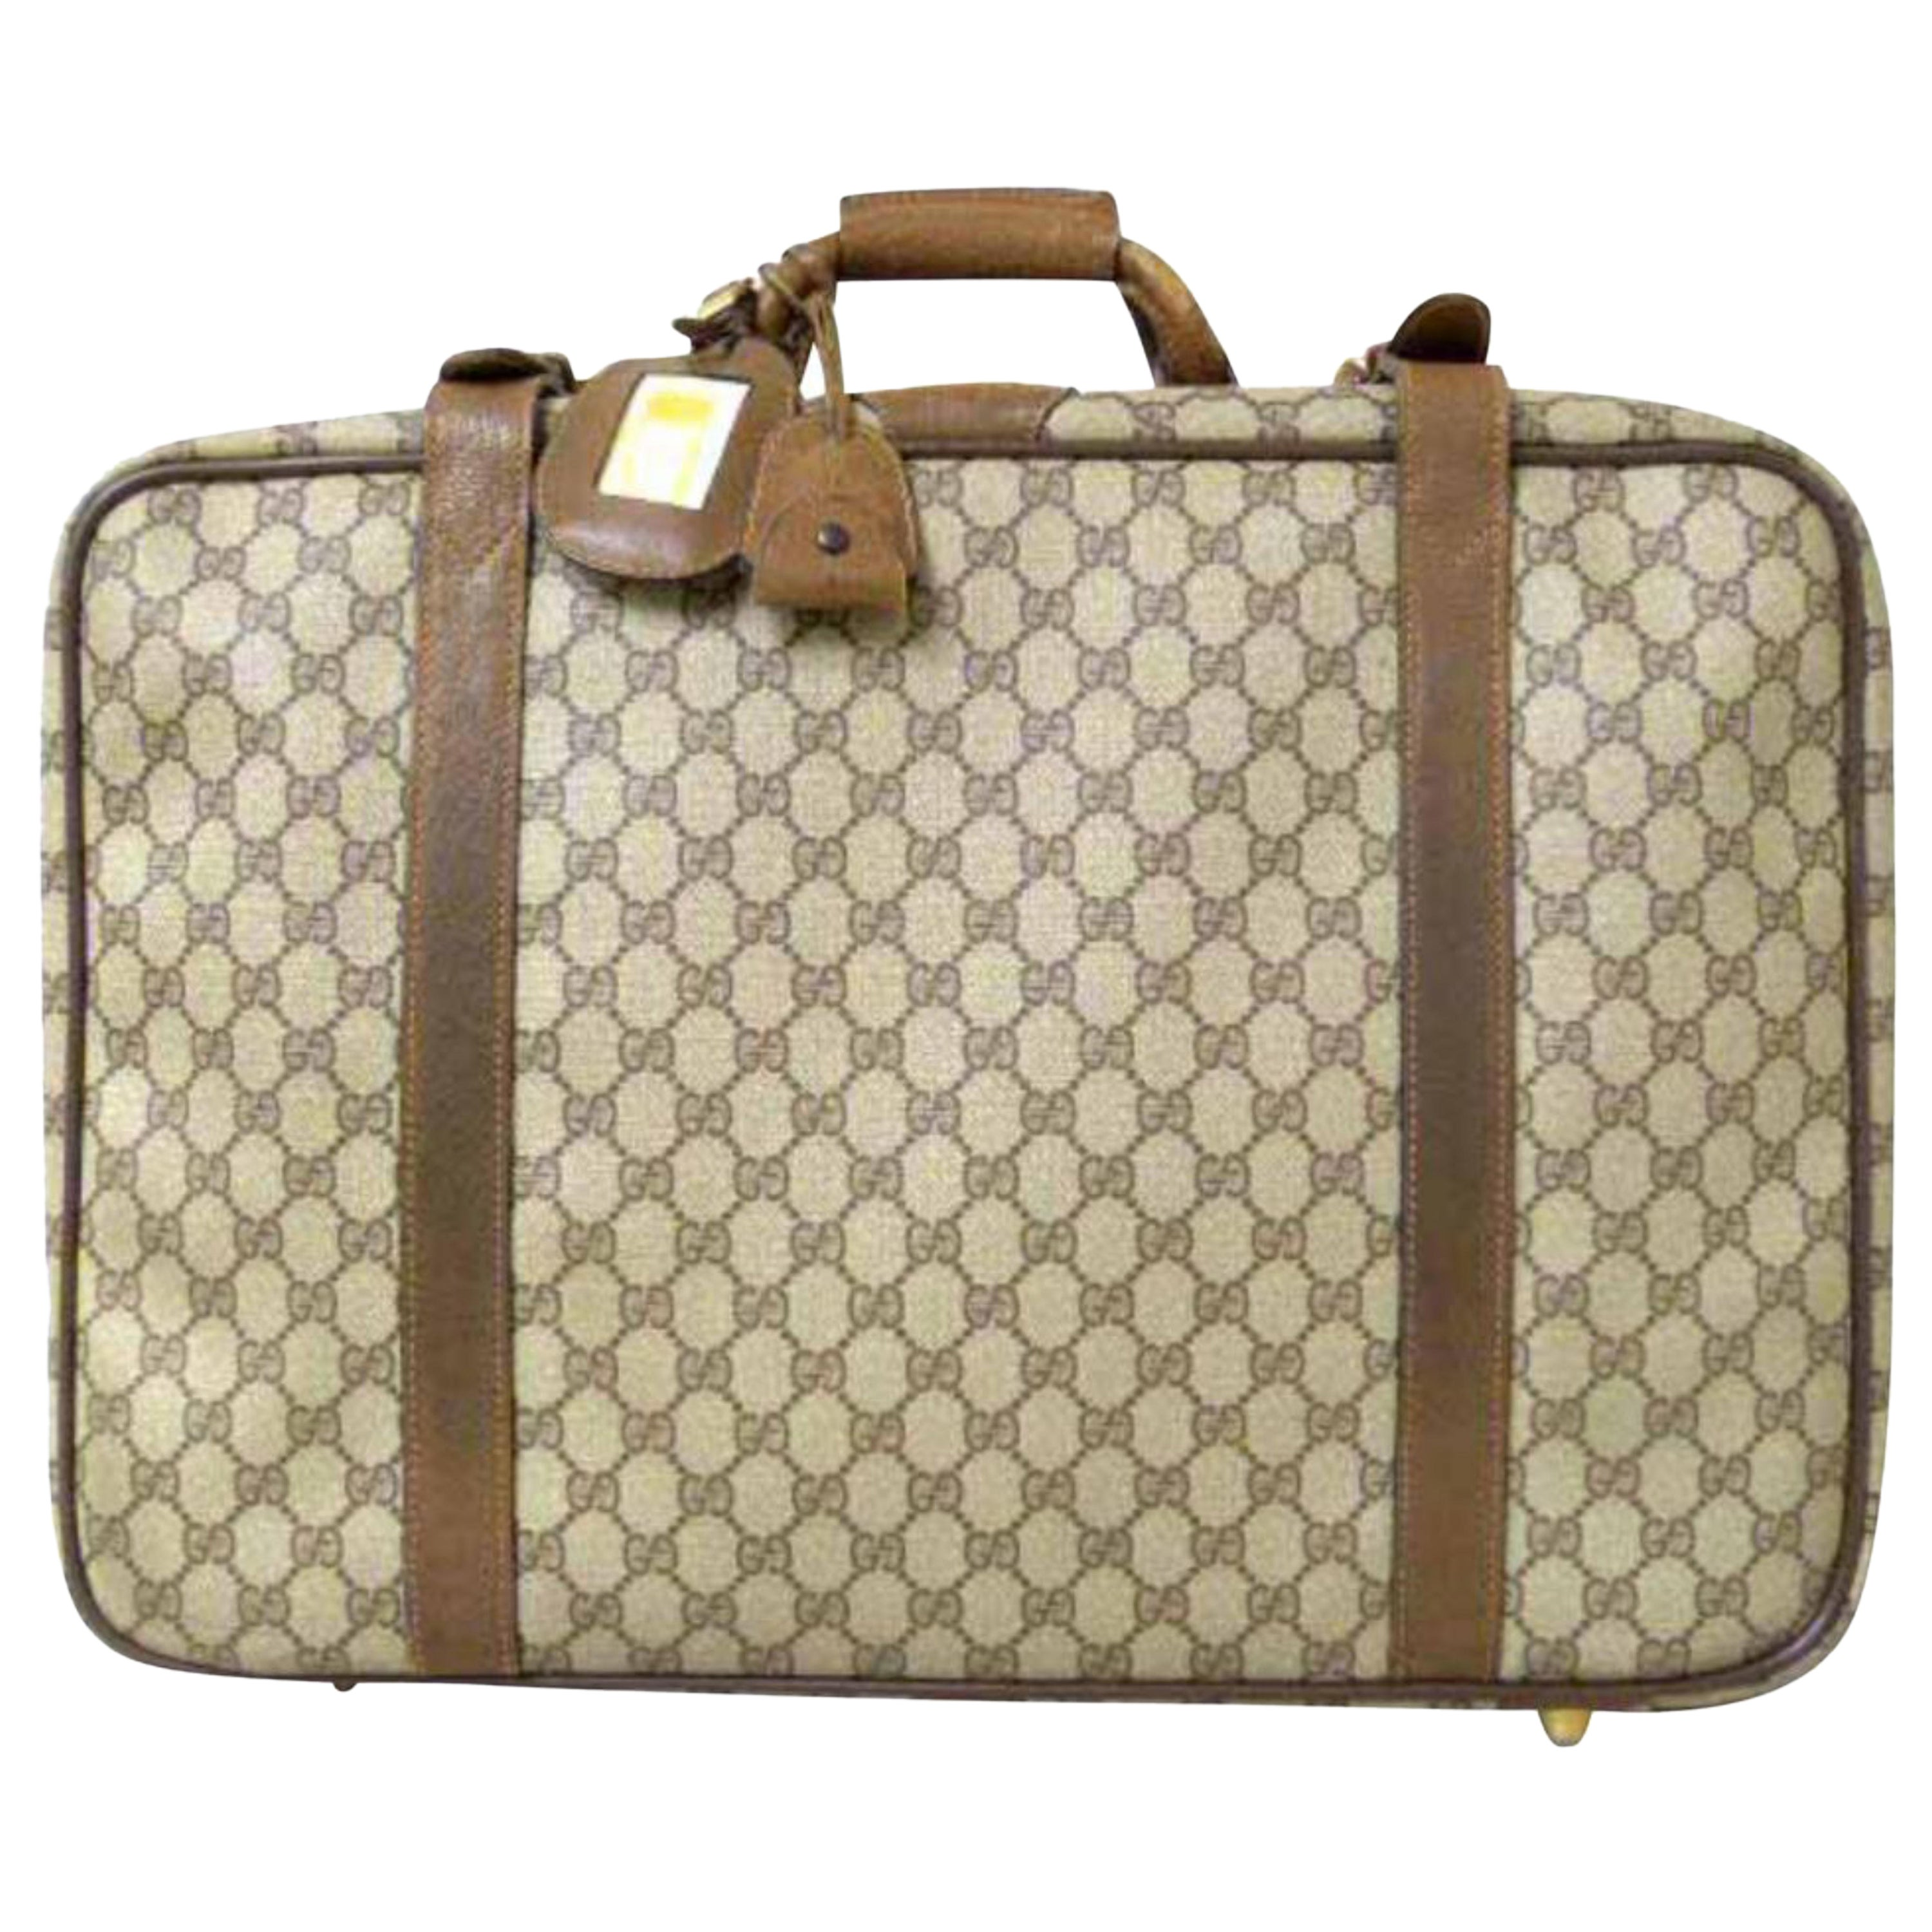 f7685659657 Gucci Supreme Gg Monogram Luggage 228869 Brown Coated Canvas Weekend Travel  Bag For Sale at 1stdibs